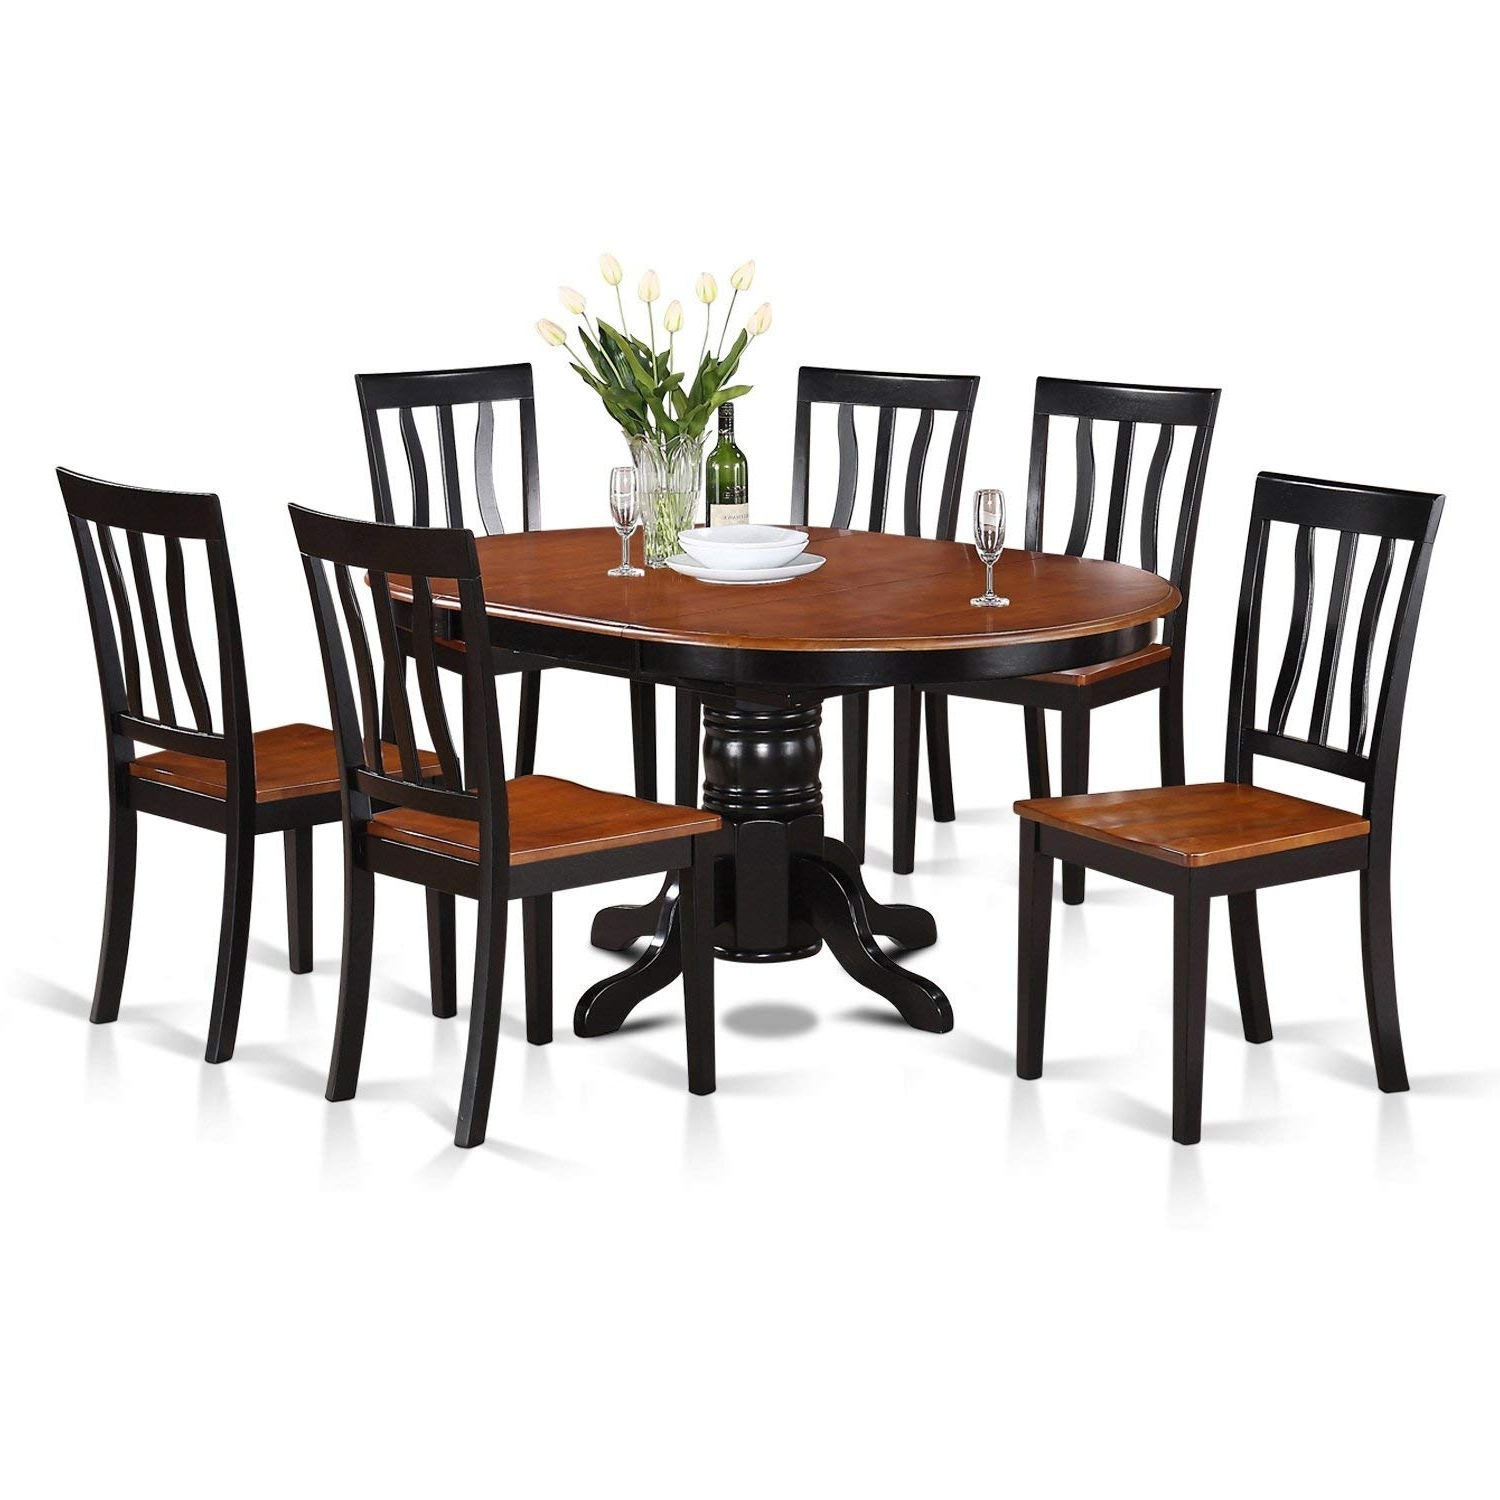 Most Recent Amazon: East West Furniture Avat7 Blk W 7 Piece Dining Table Set In Jaxon Grey 6 Piece Rectangle Extension Dining Sets With Bench & Wood Chairs (View 10 of 25)